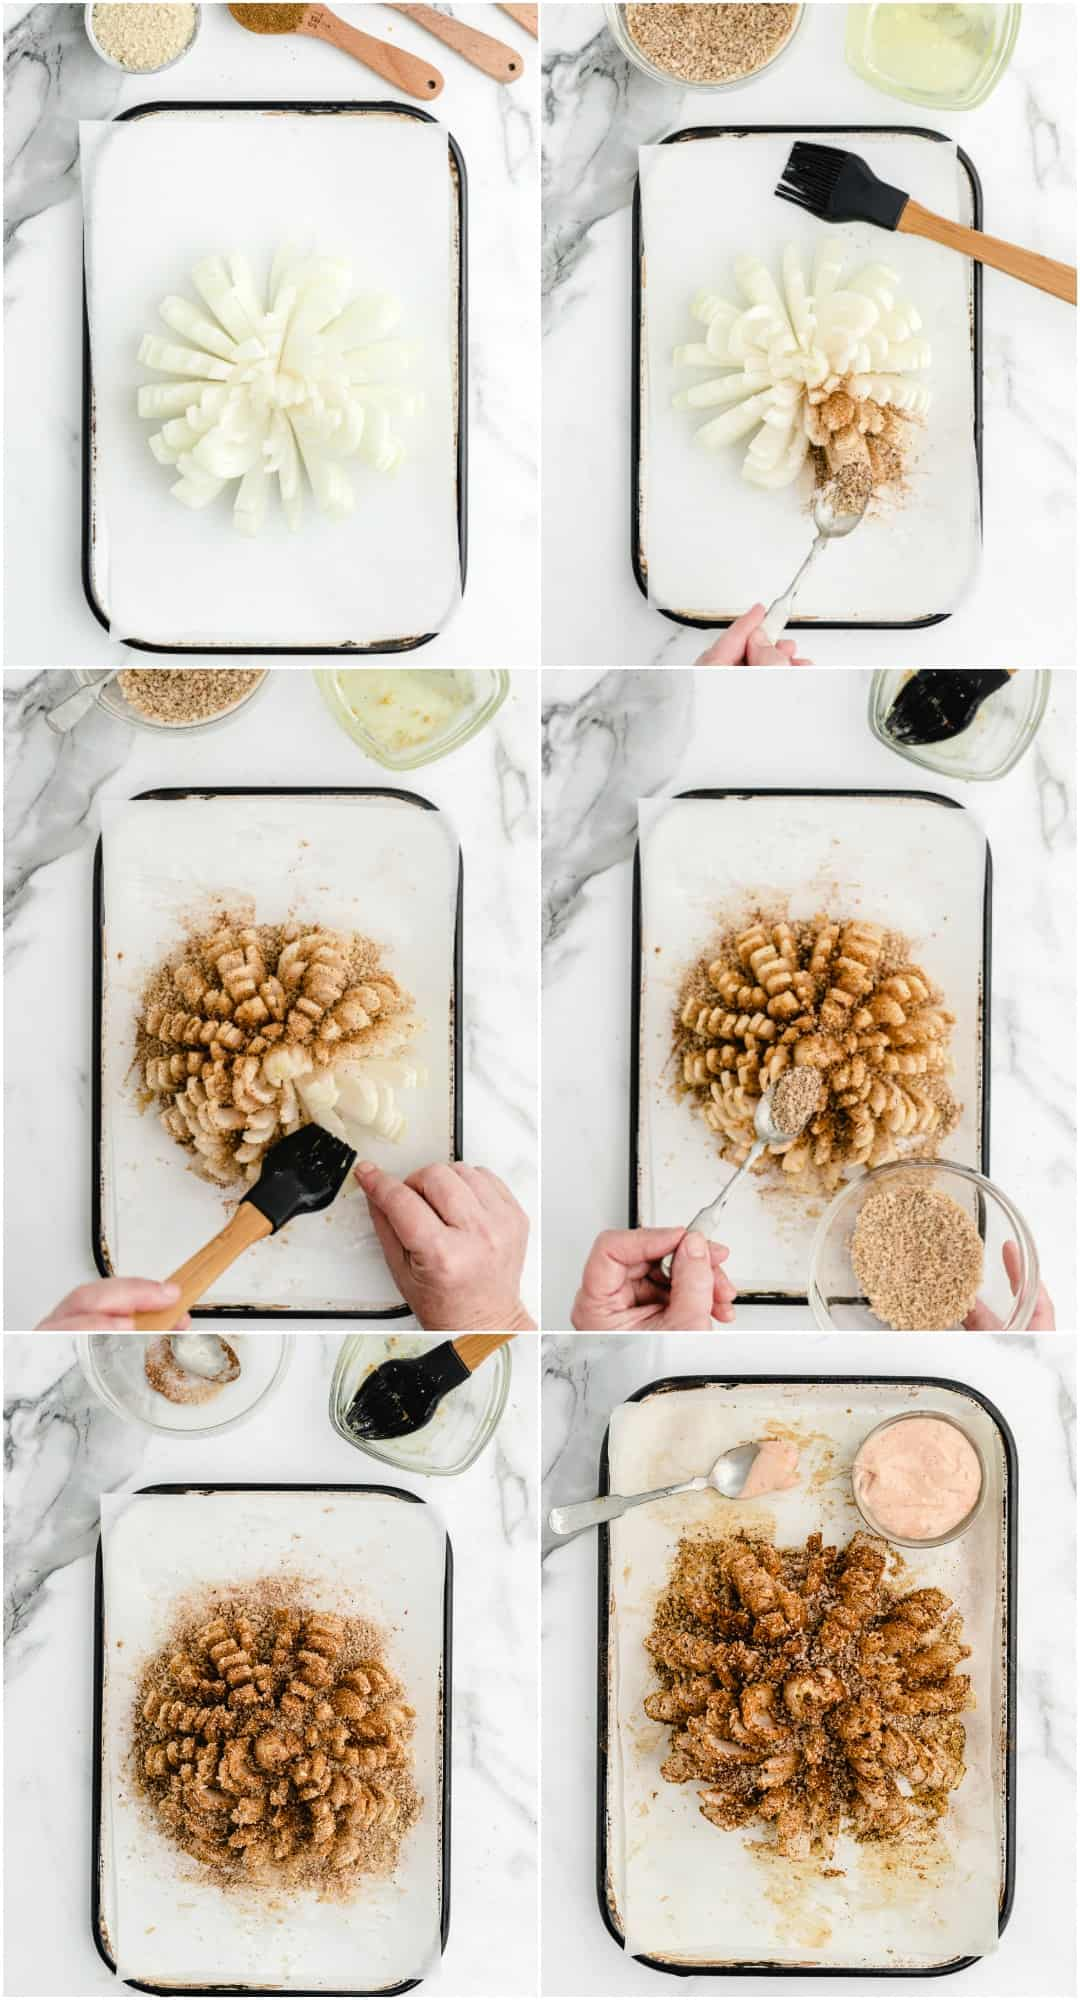 how to make blooming onion step by step photos